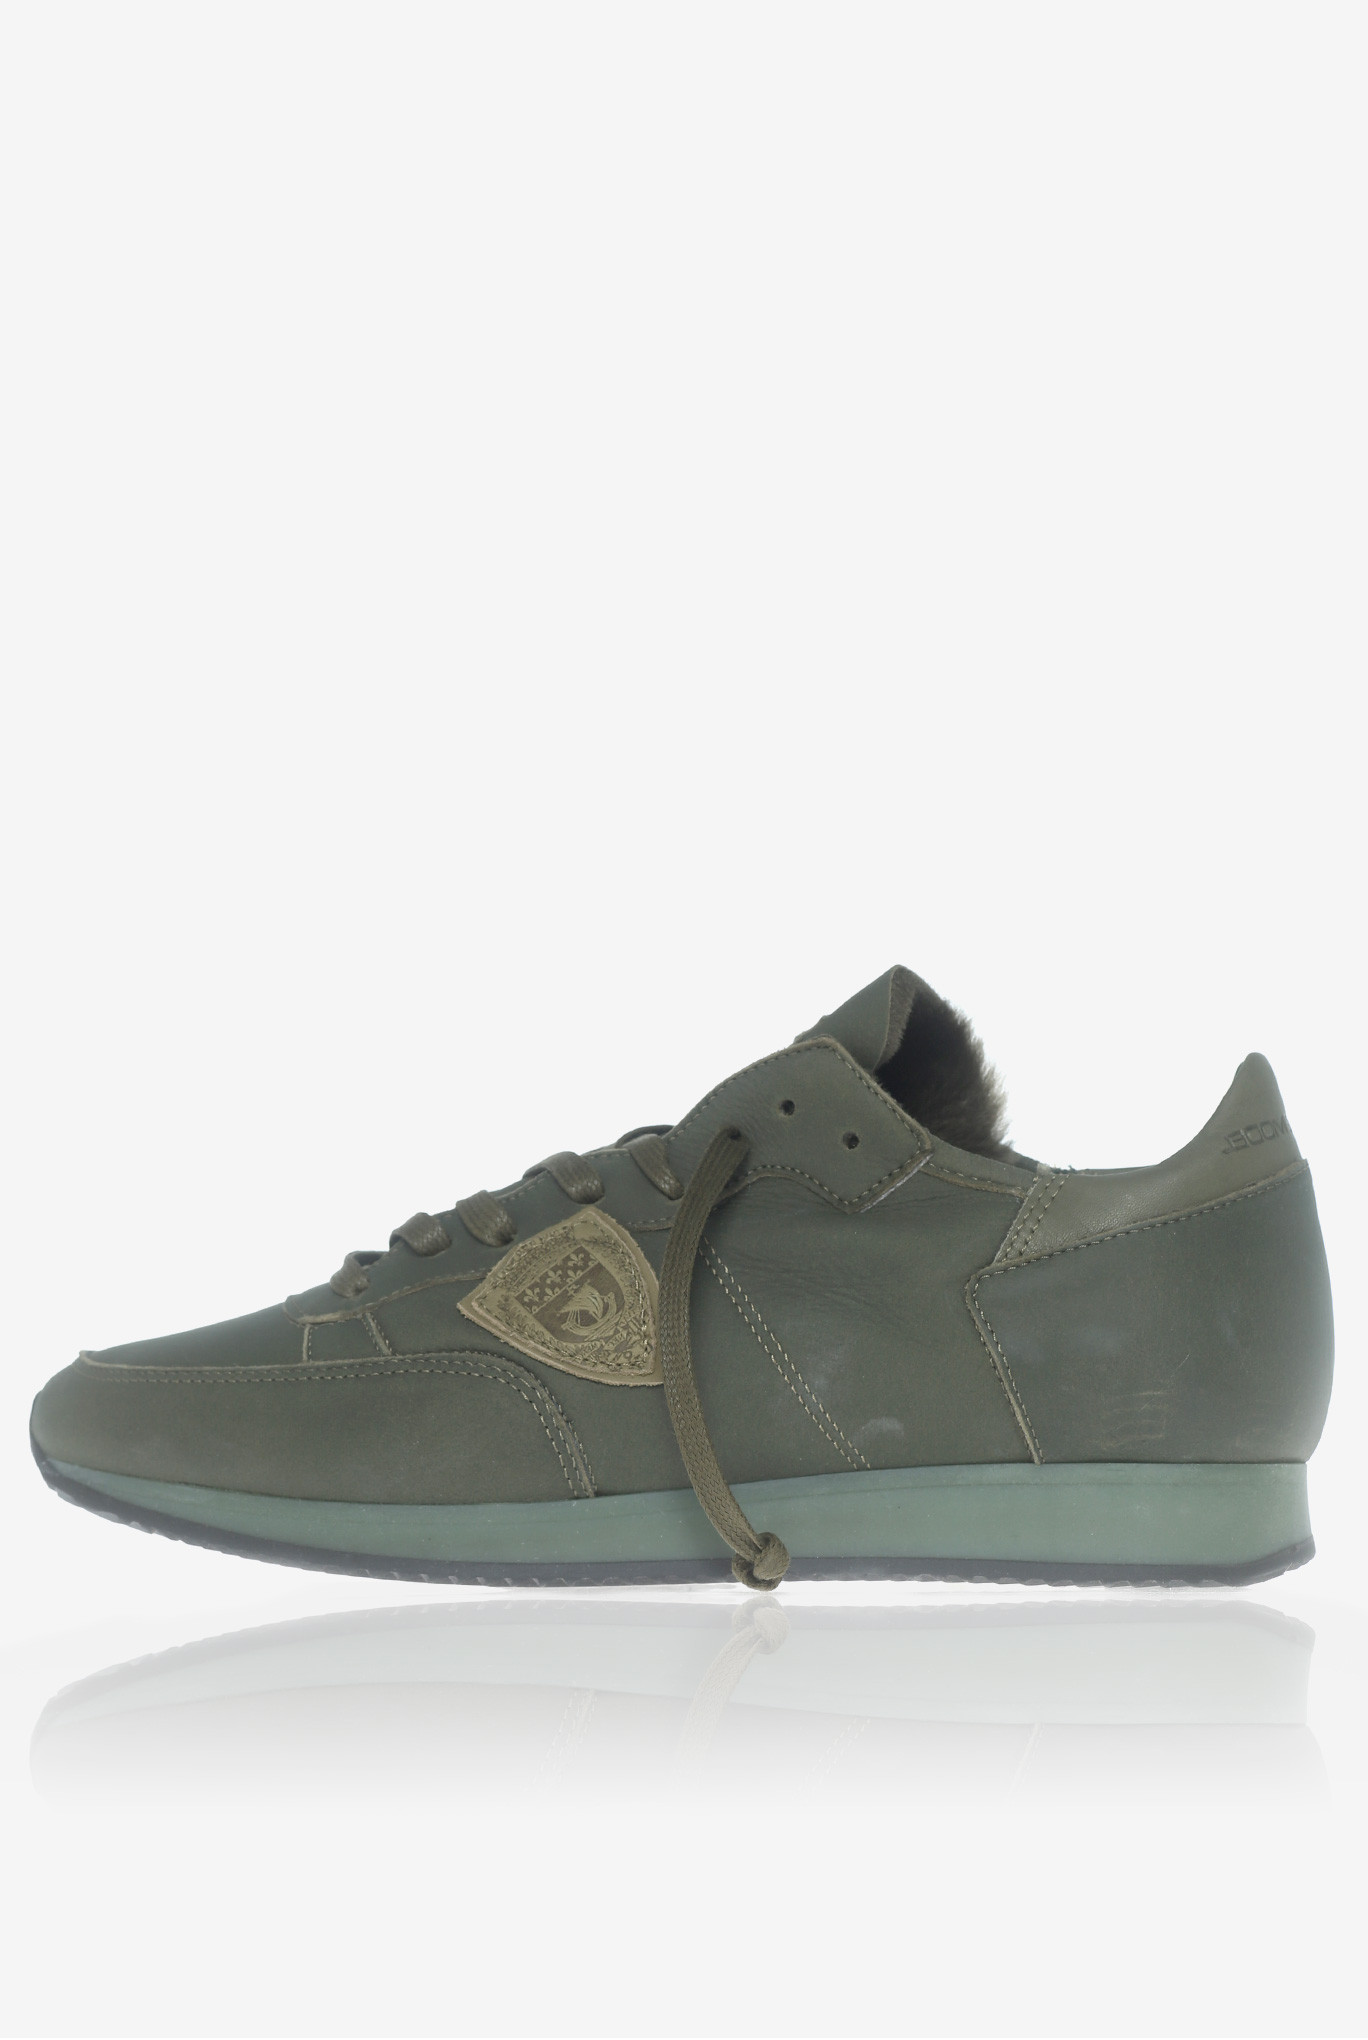 BASKETS PHILIPPE MODEL TROPEZ LOW UOMO MOUTON VERT TRLU-AM17